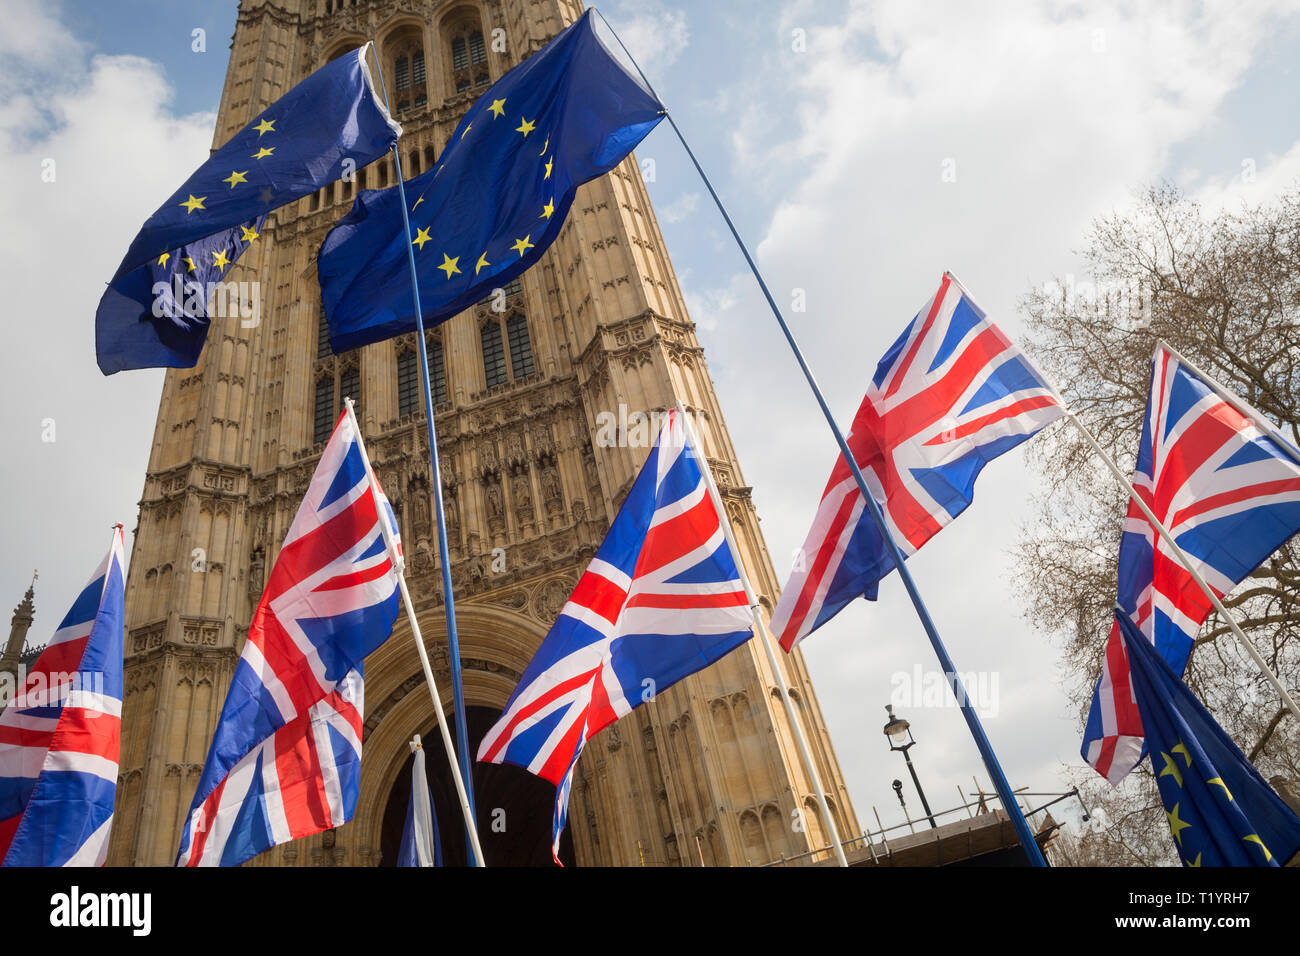 As MPs decide on how to progress with Brexit parliamentary procedure, EU and Union Jack flags fly outside the UK Parliament in Westminster, on 28th March 2019, in London, England - Stock Image